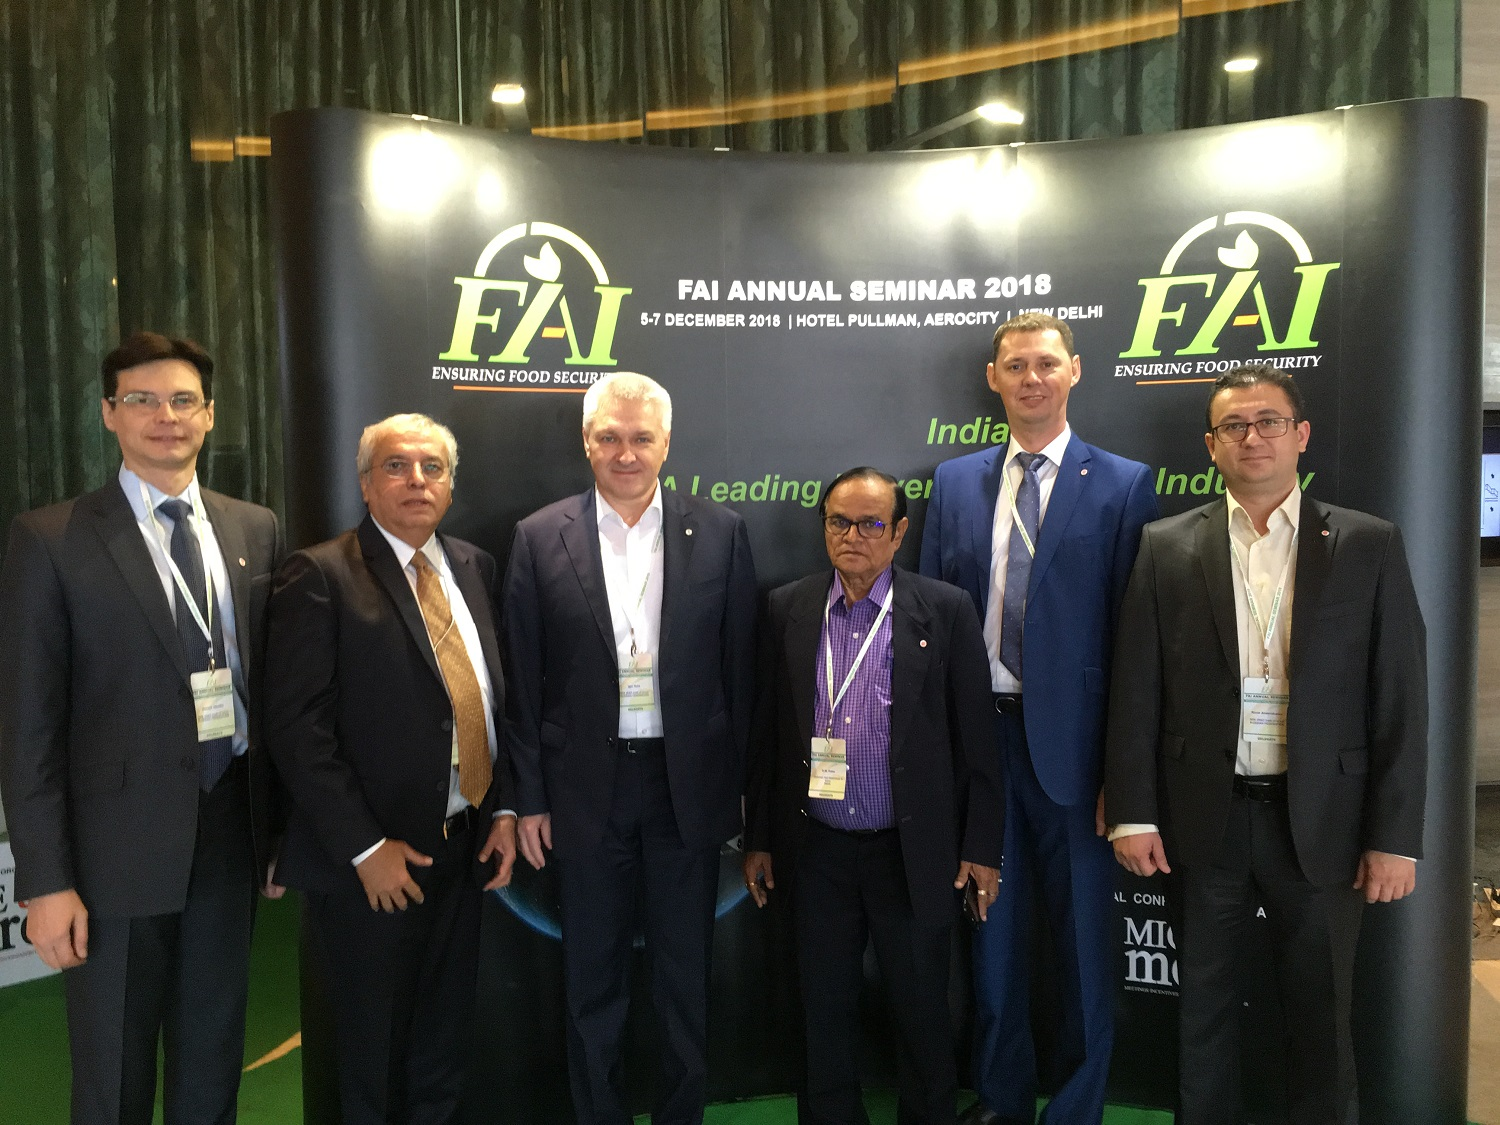 On December 5-7th, 2018, NIIK team headed by President and CEO Igor Esin attended FAI Annual Seminar 2018 held in New Delhi, India